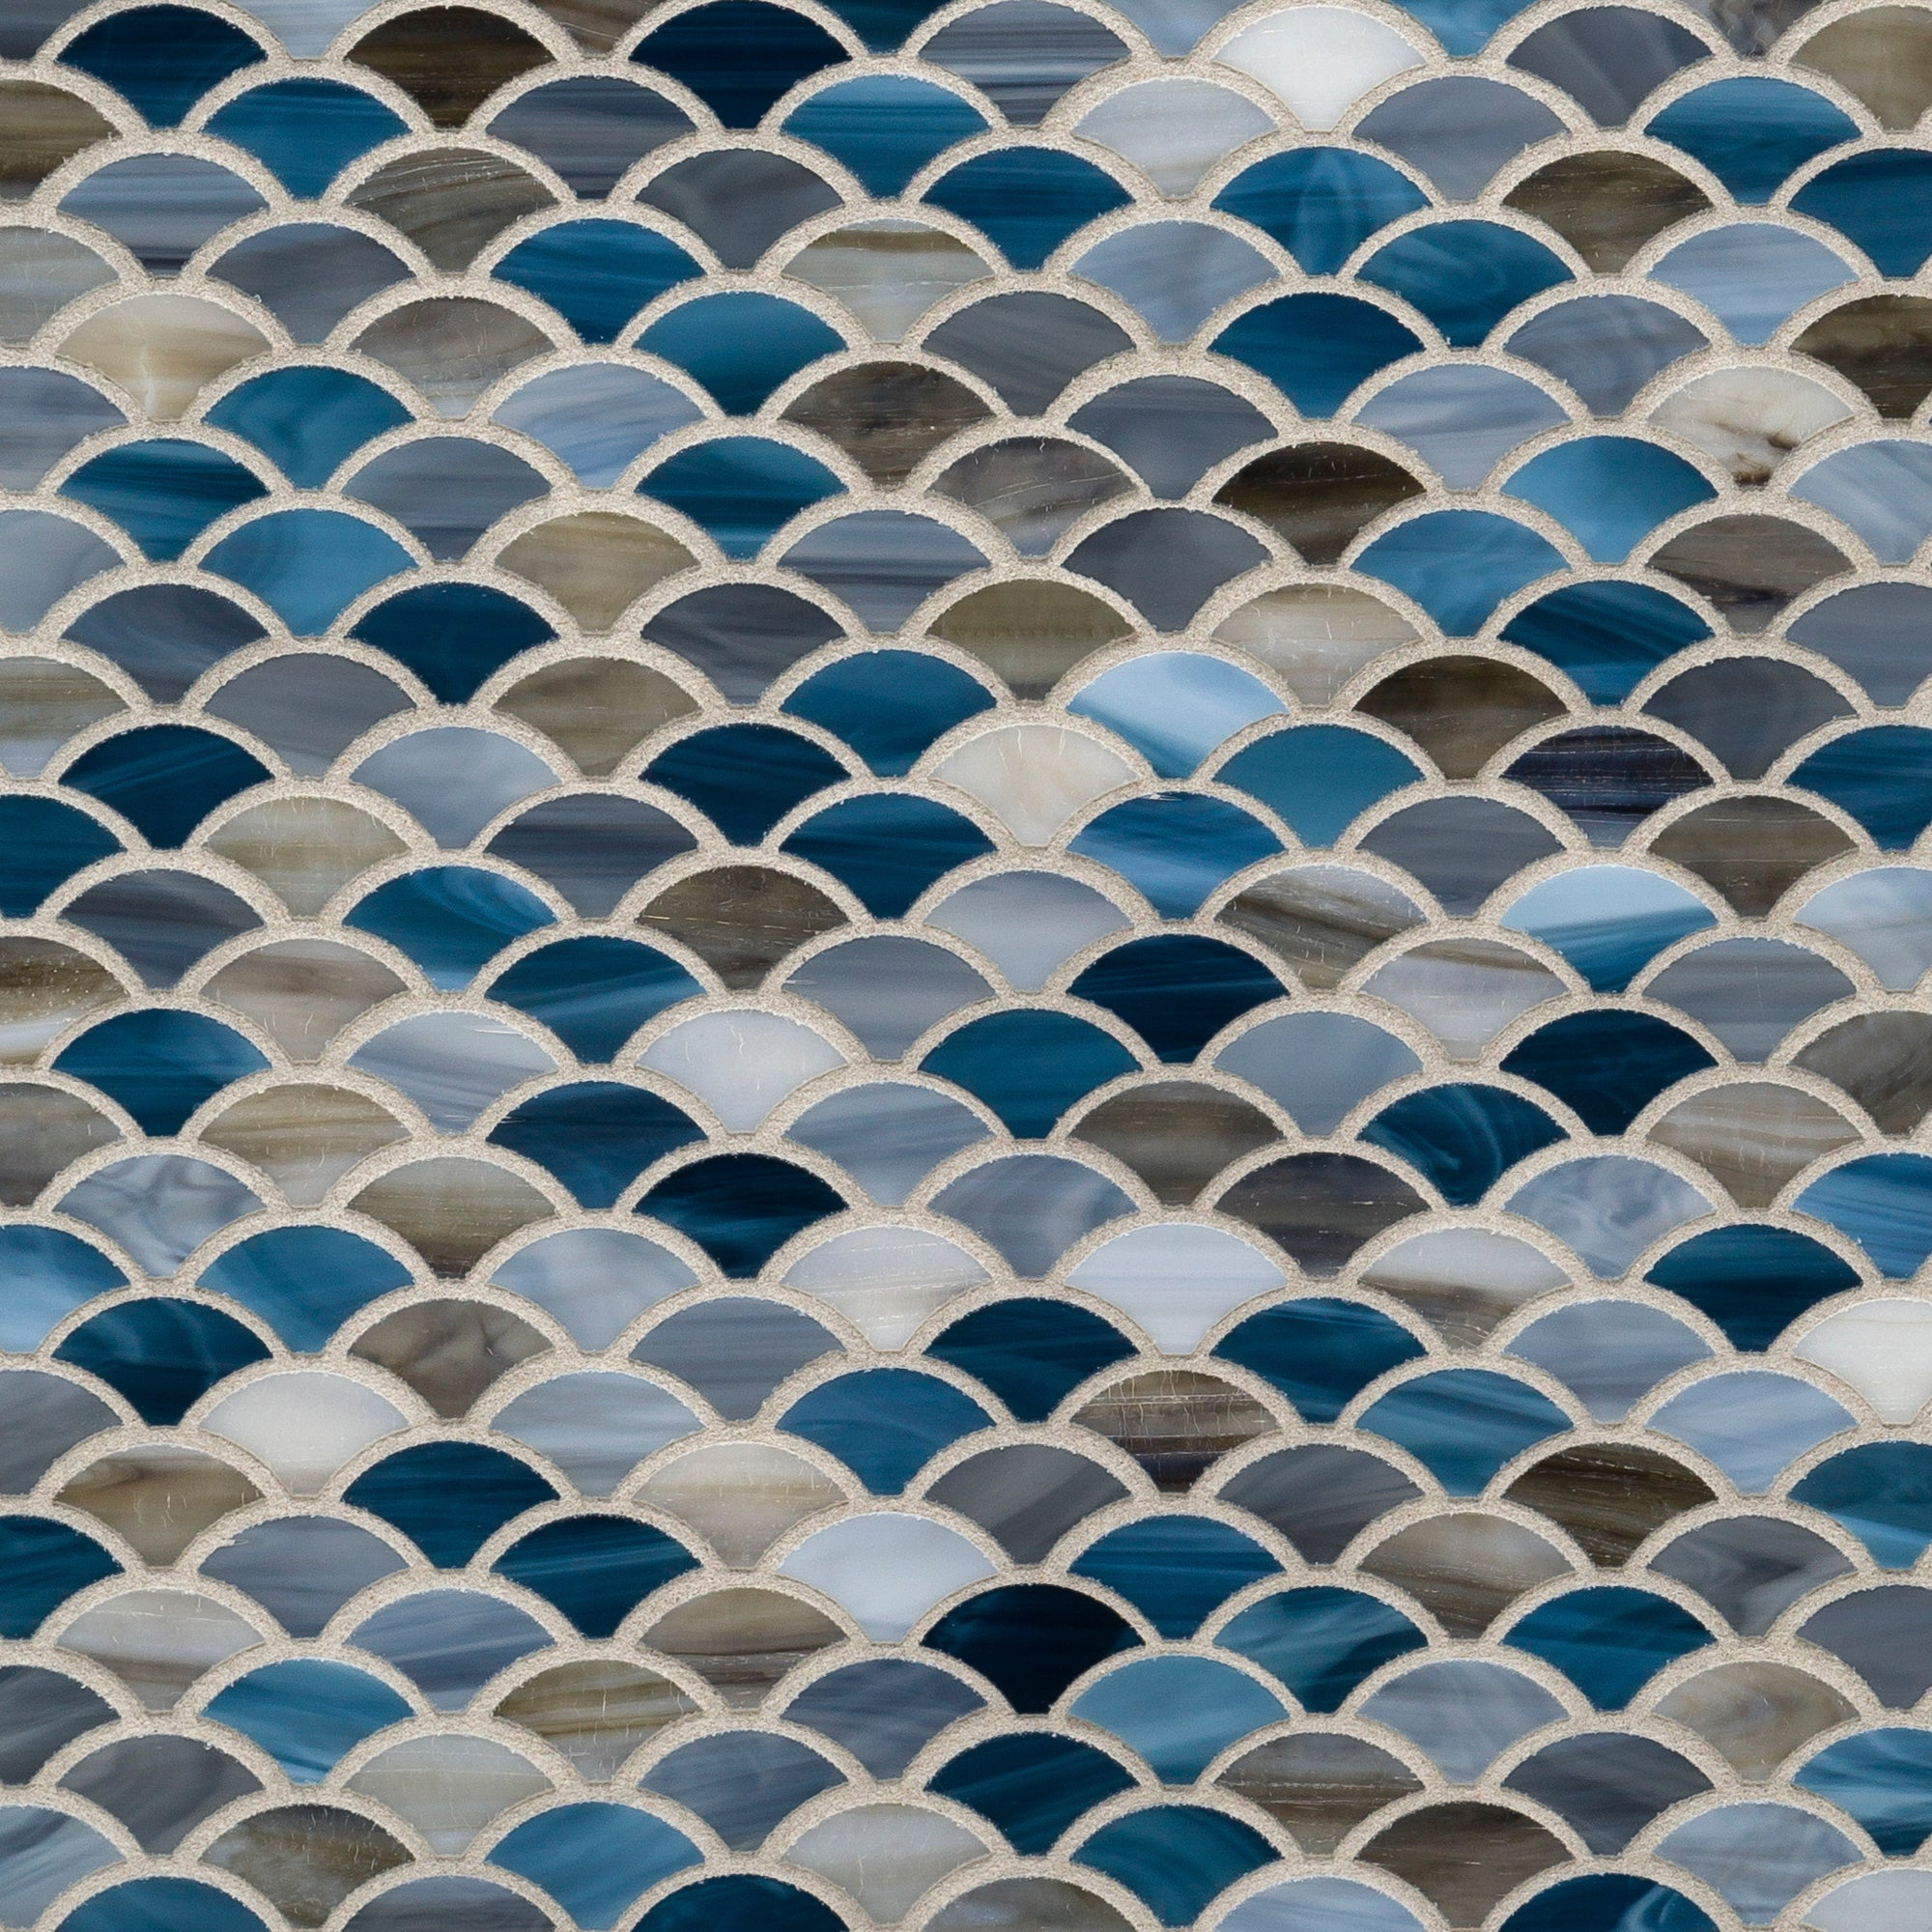 Scales Blue Blend Mosaic product photo